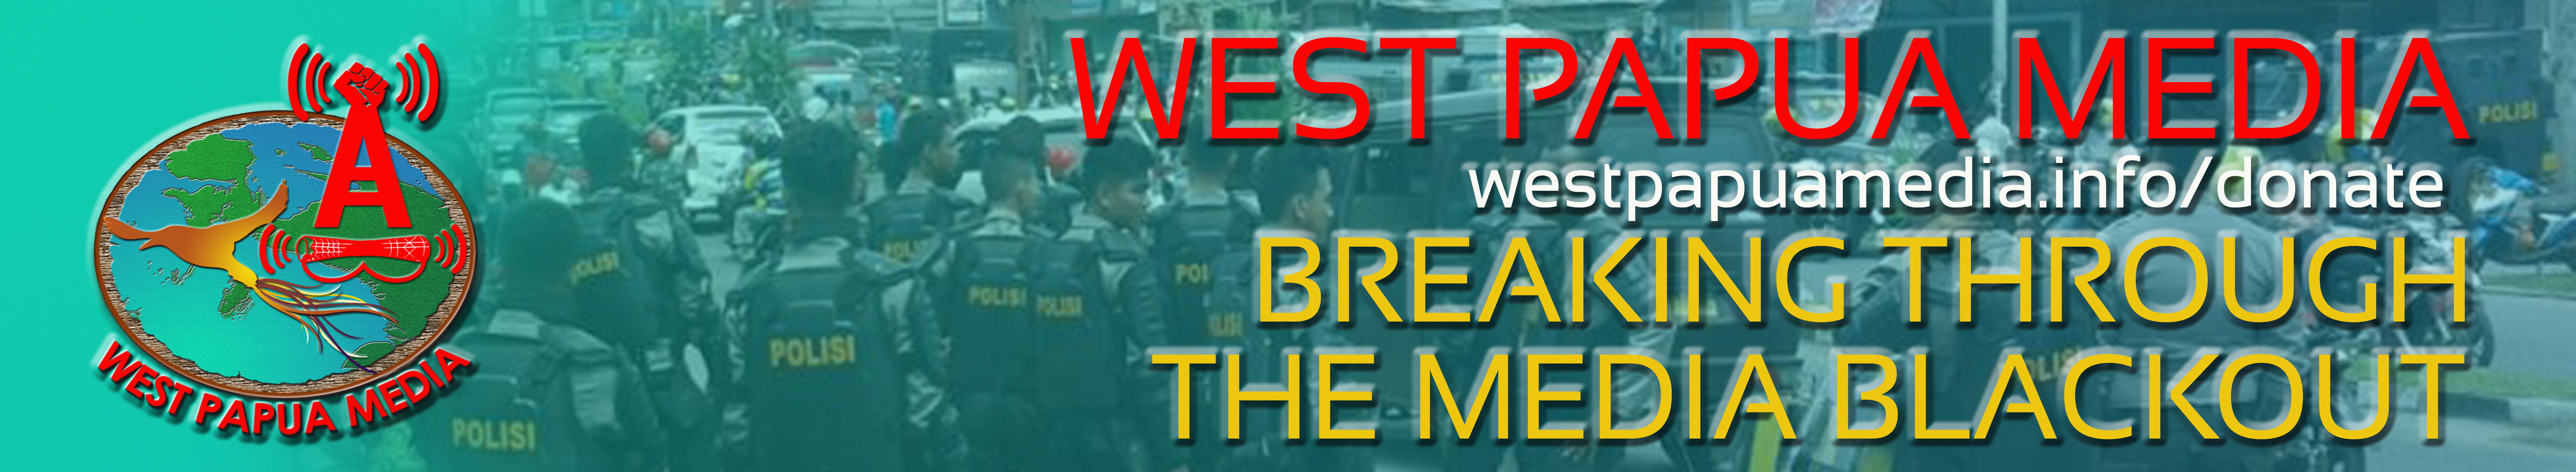 West Papua Media - breaking the media blackout